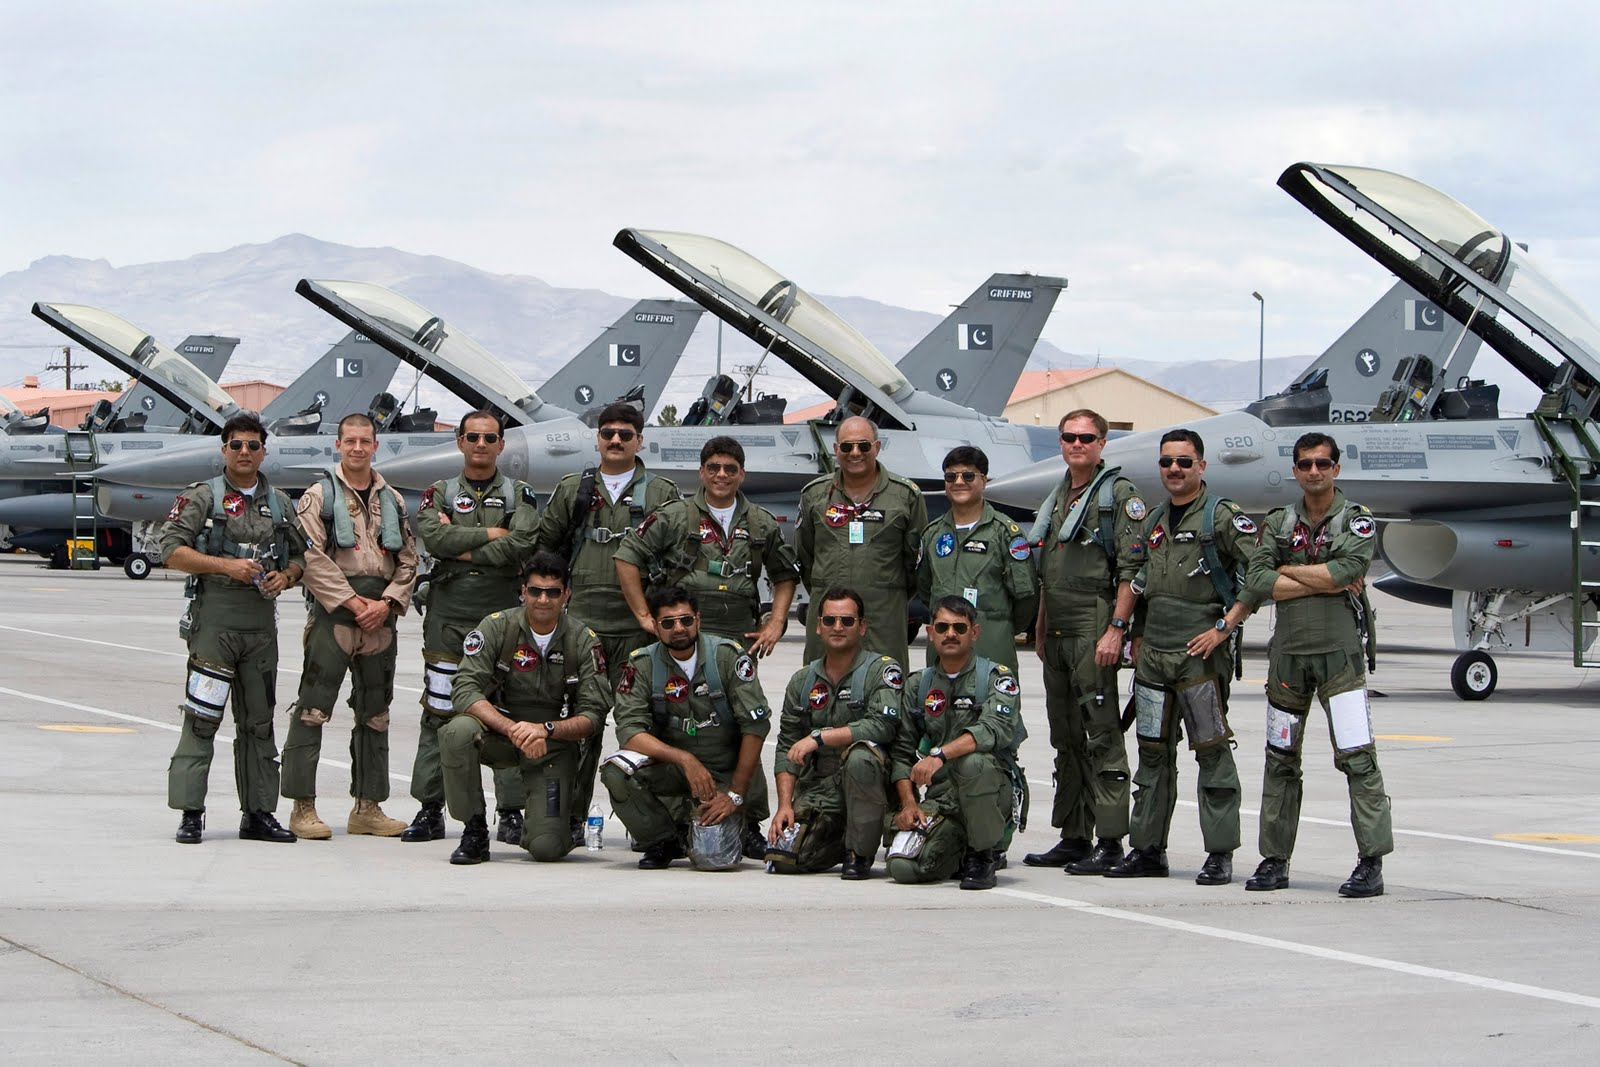 paff16 - Pakistan Air Force